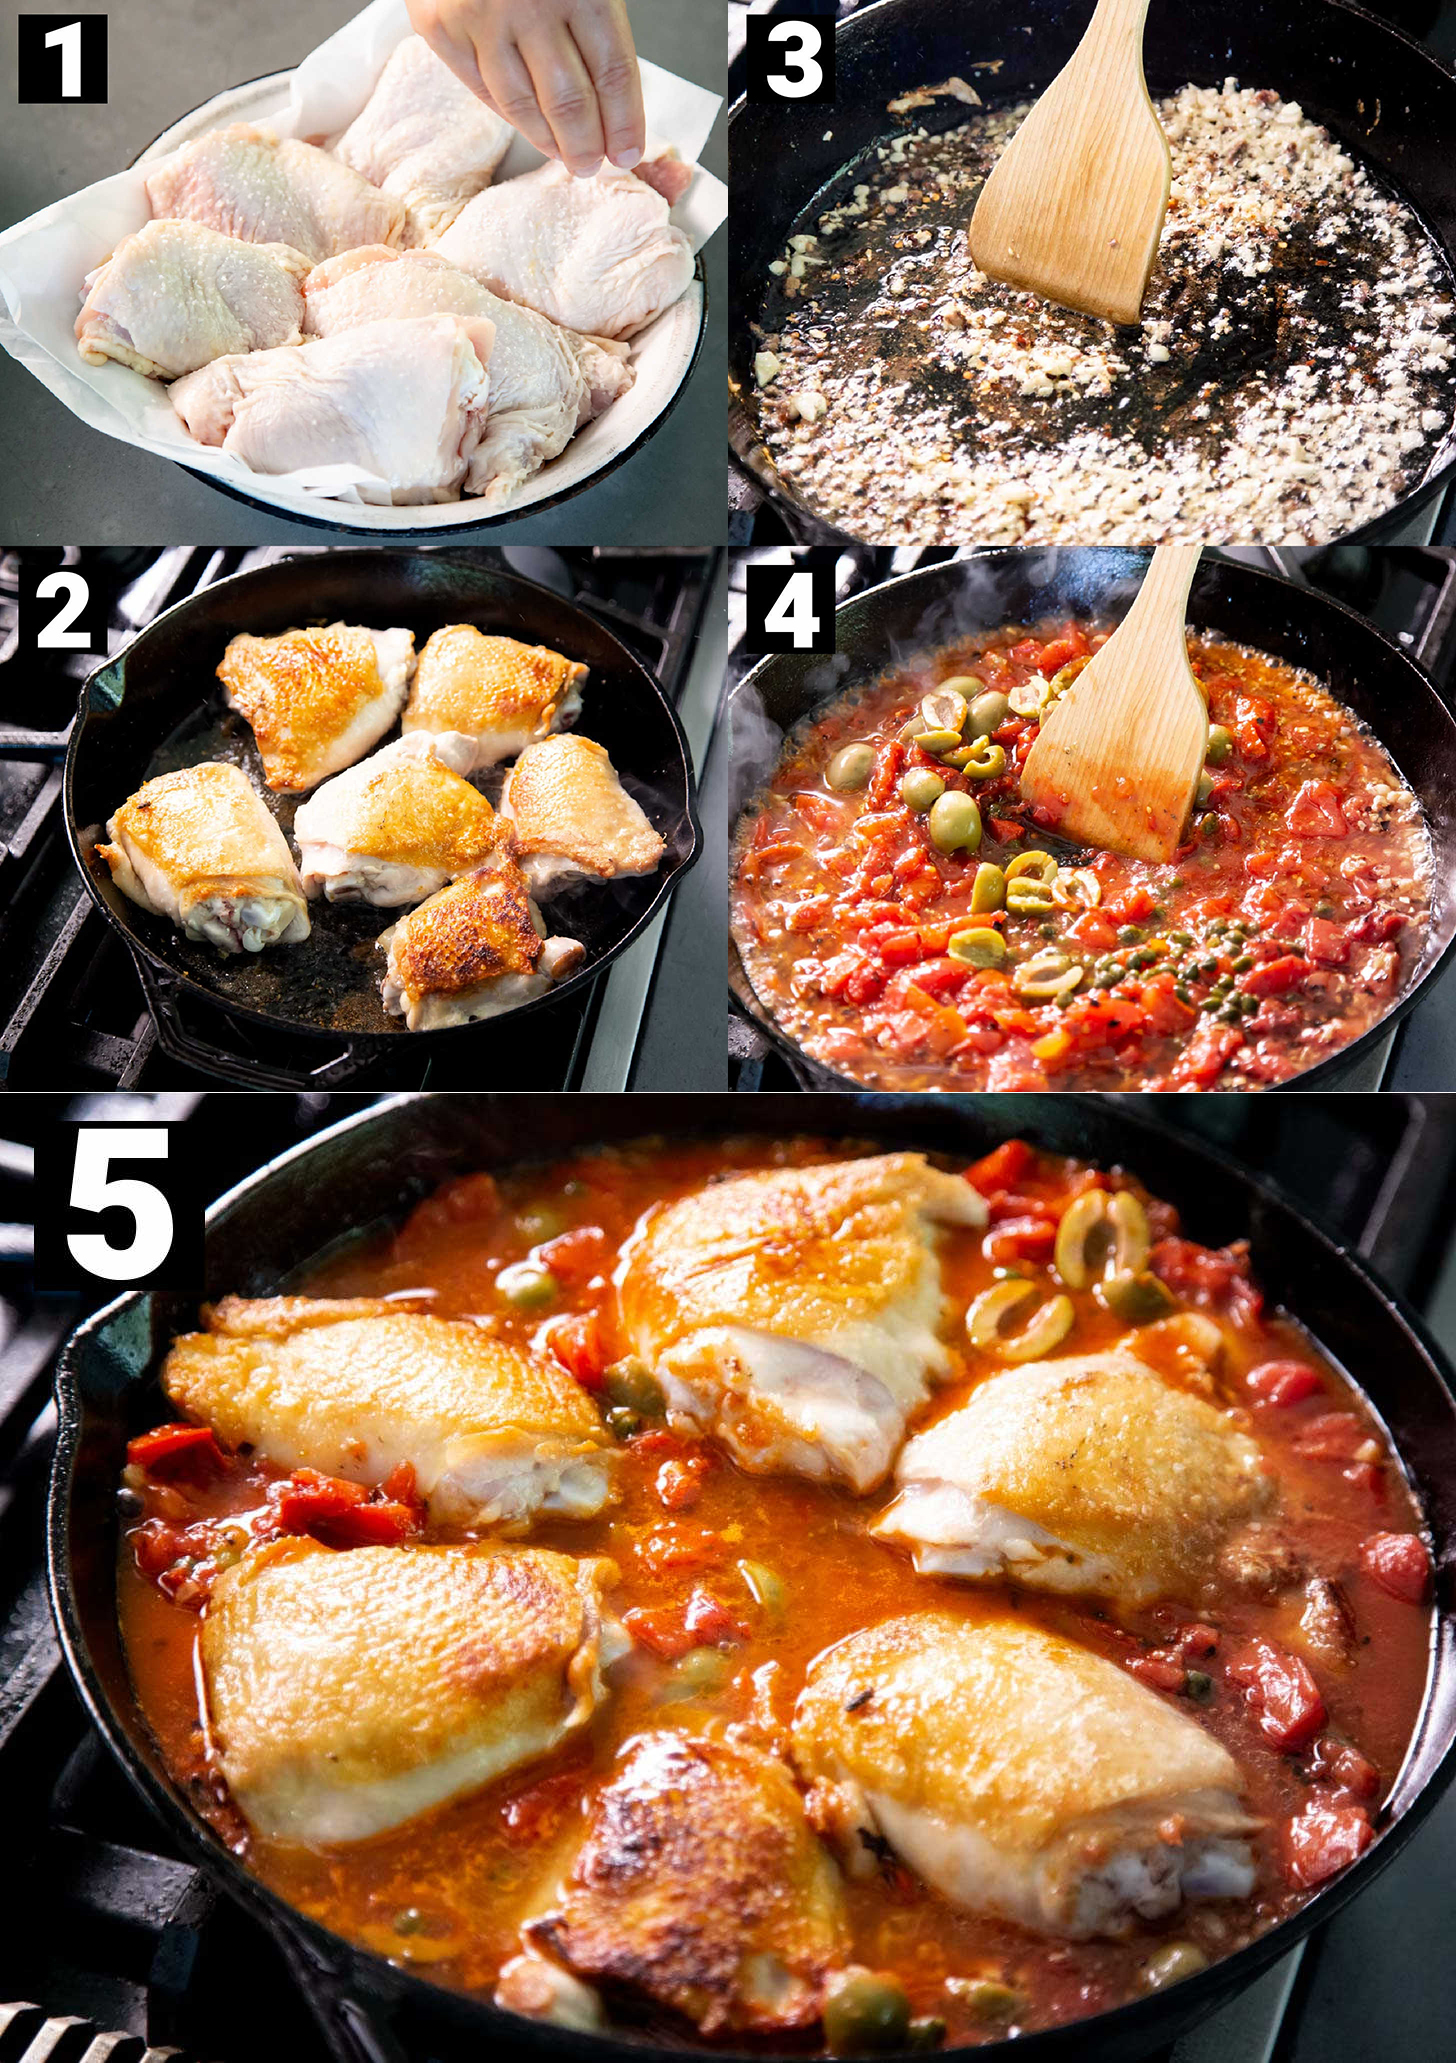 5 images showing how to make chicken puttanesca